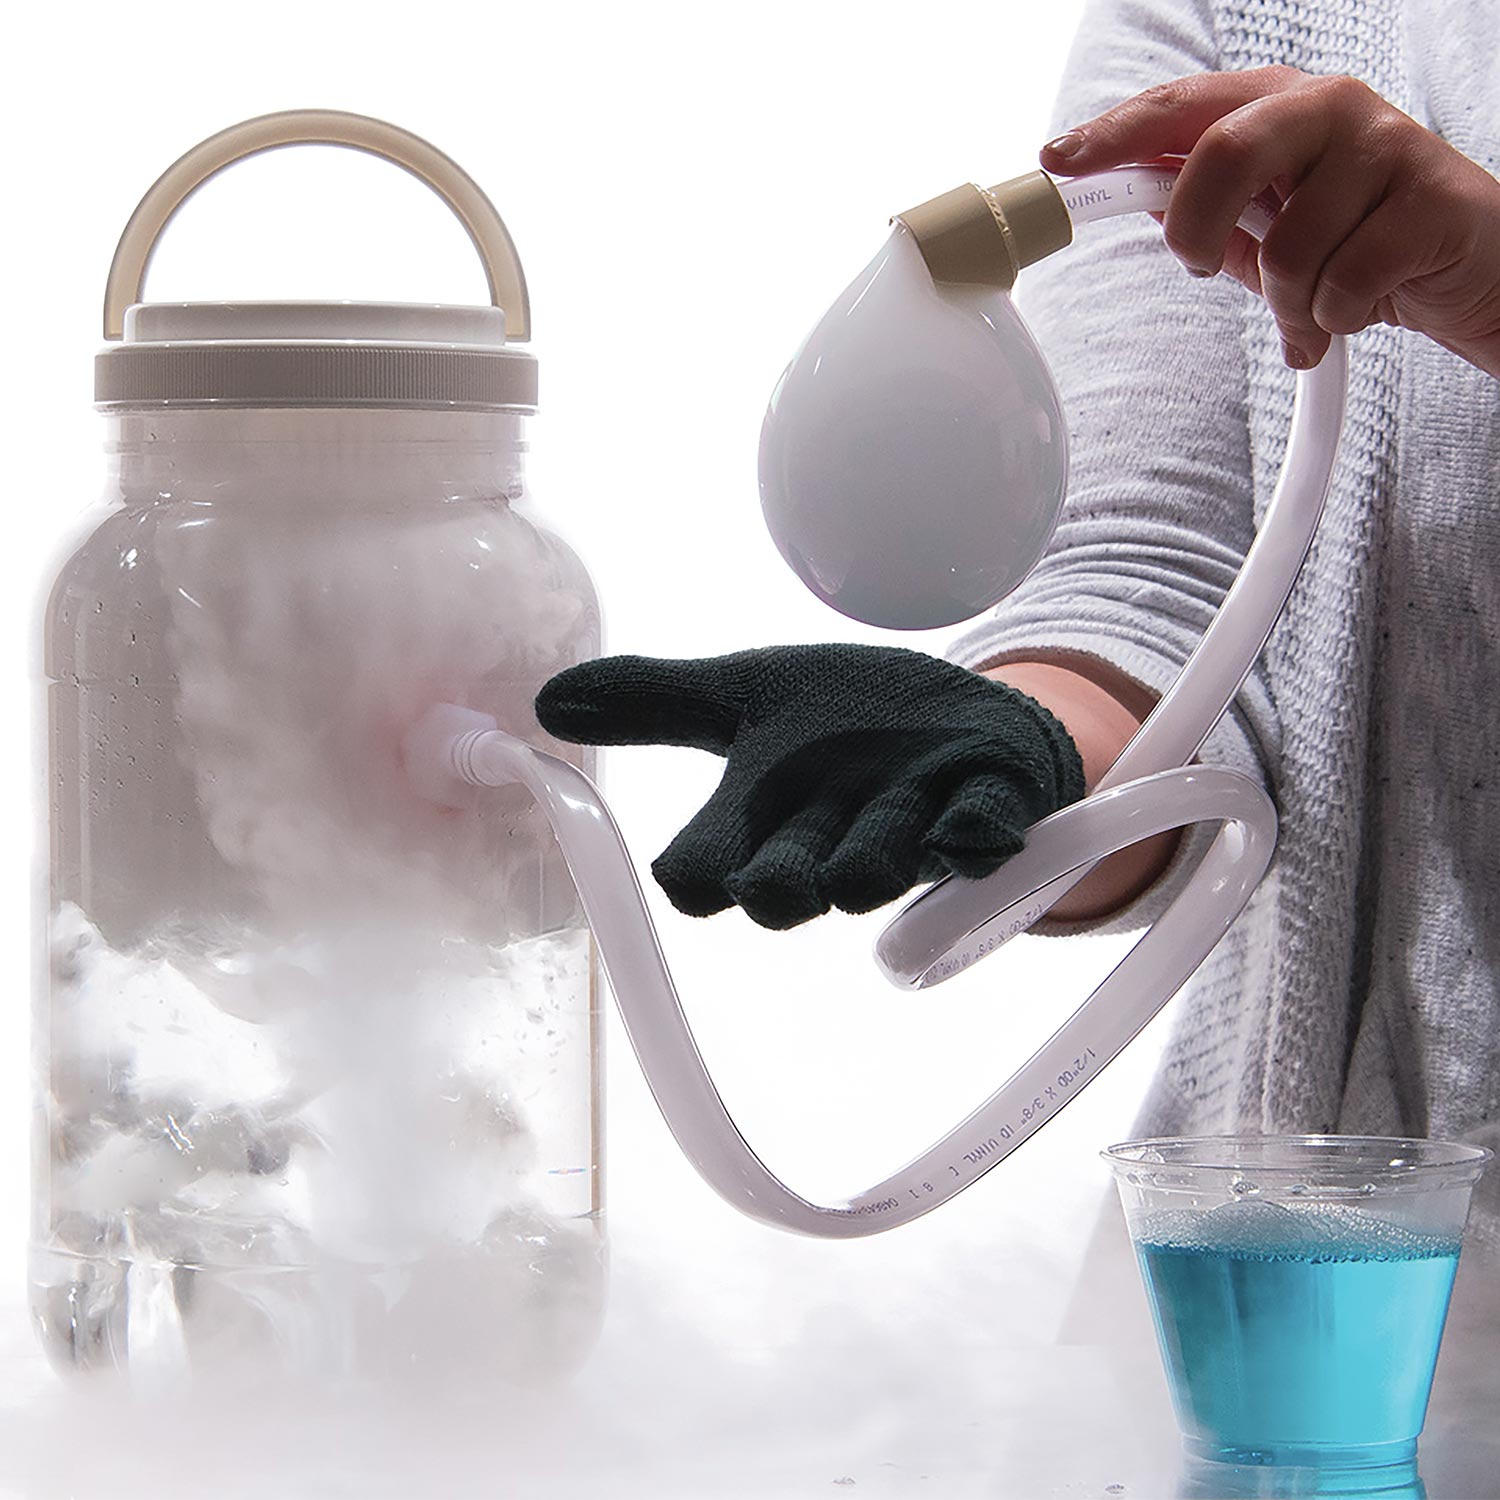 Boo Bubbles - Dry Ice Smoke Filled Bubbles - Steve Spangler Science